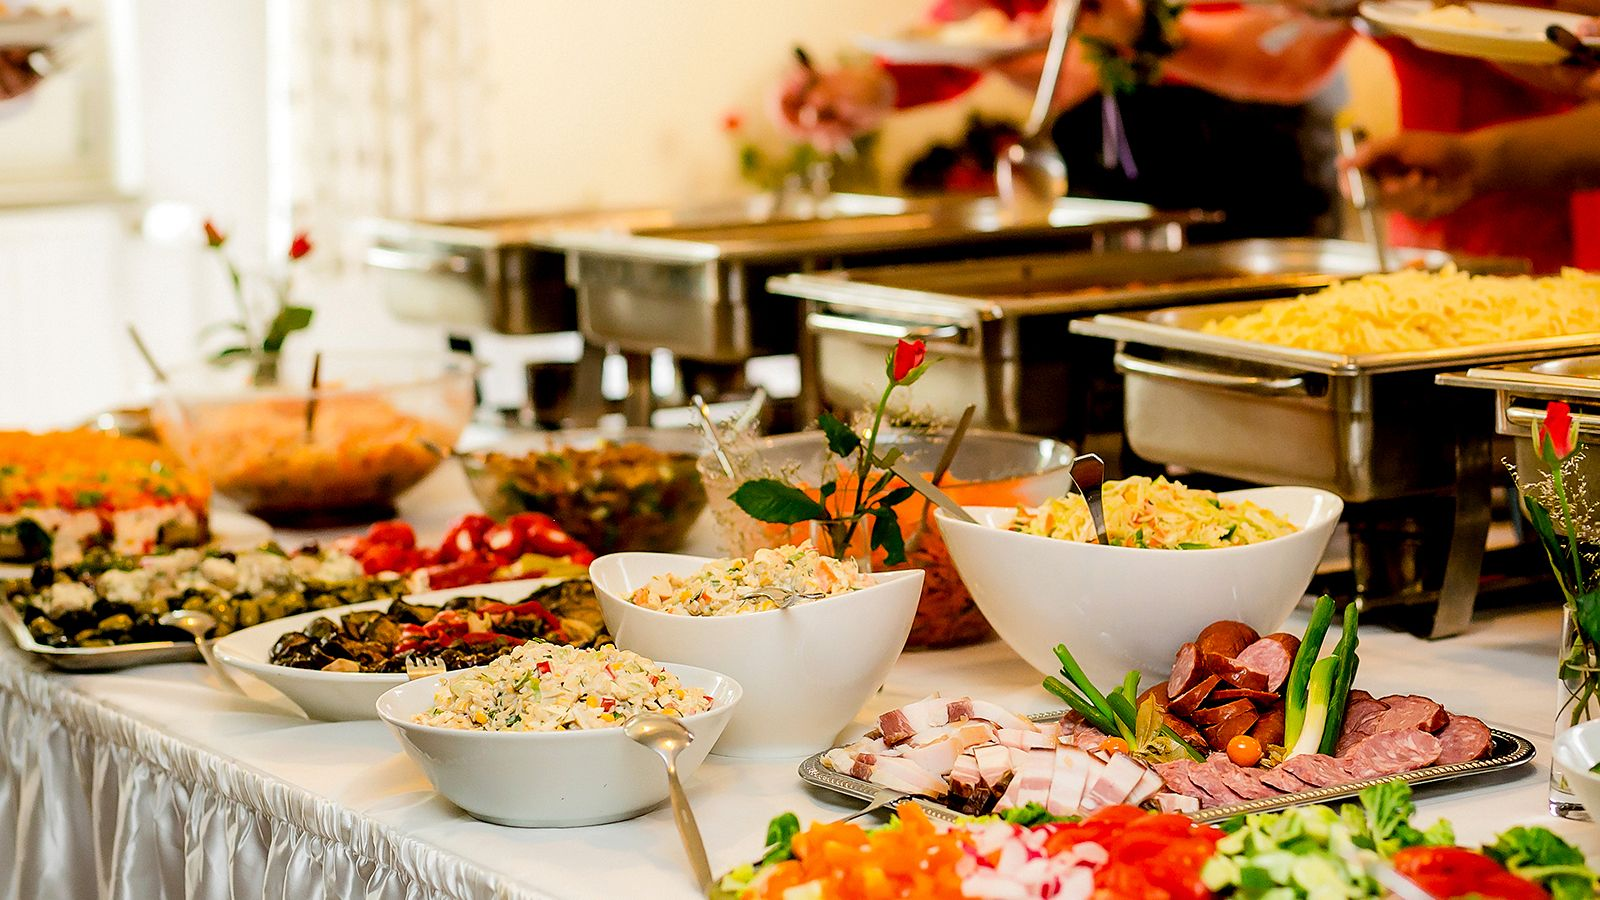 Entering your website, you can   register and hire your party catering service